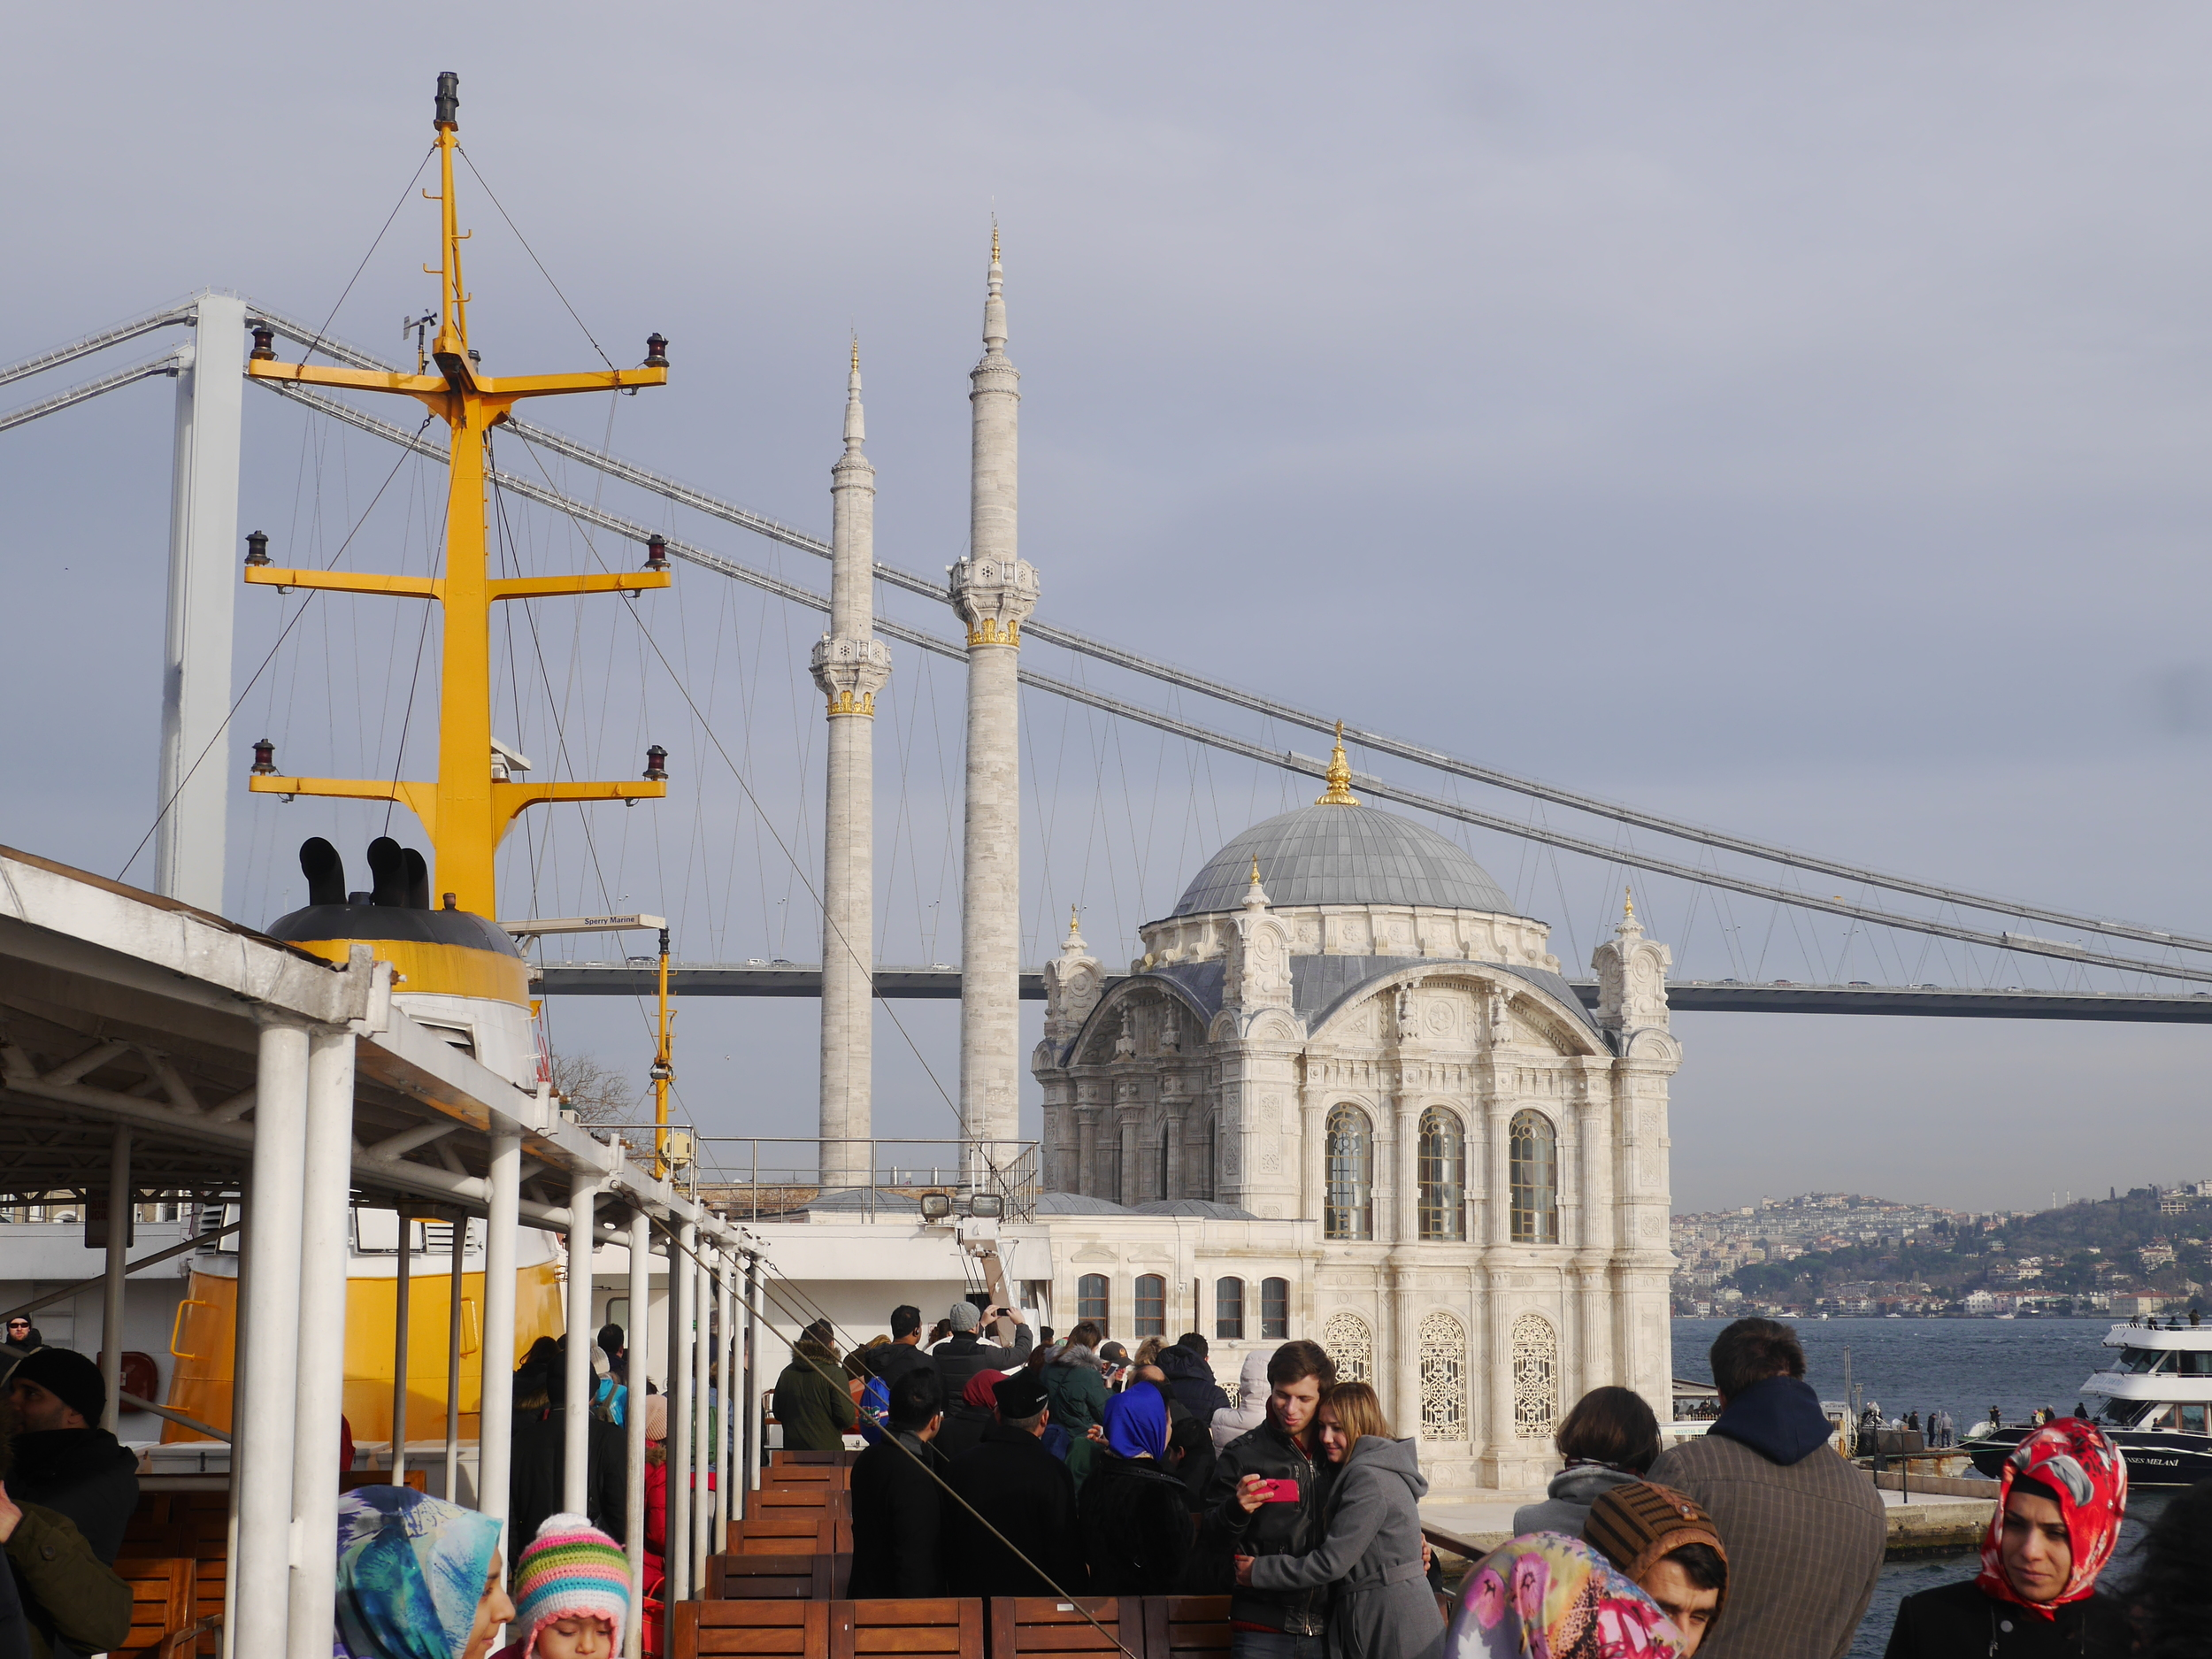 Our fellow tour participants, the  Ortakoy Mosque , and the  Bosphorus Bridge .